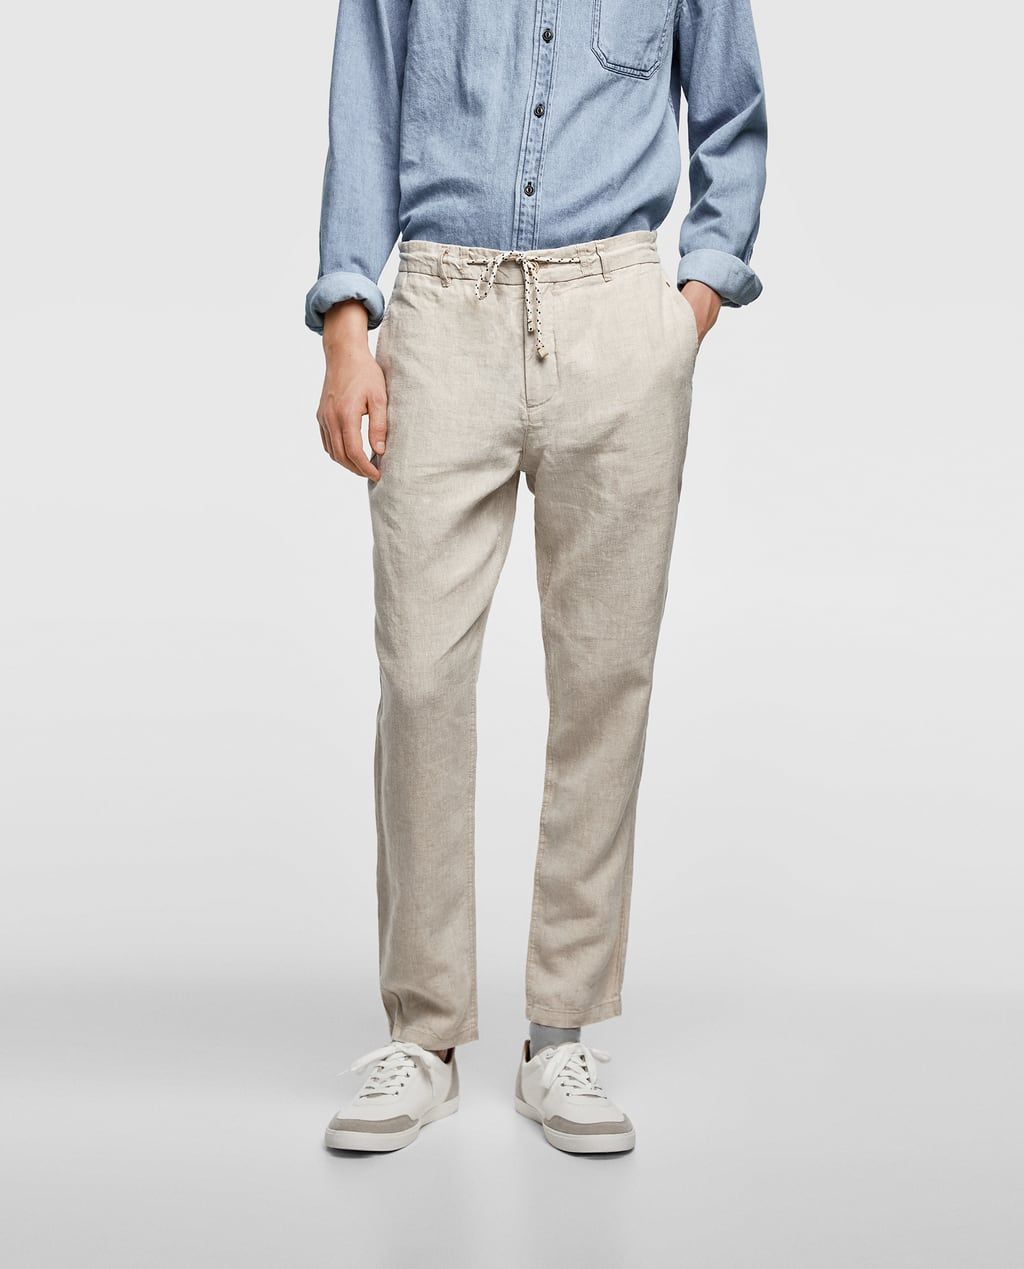 Image 2 of loosefitting linen trousers from zara mens